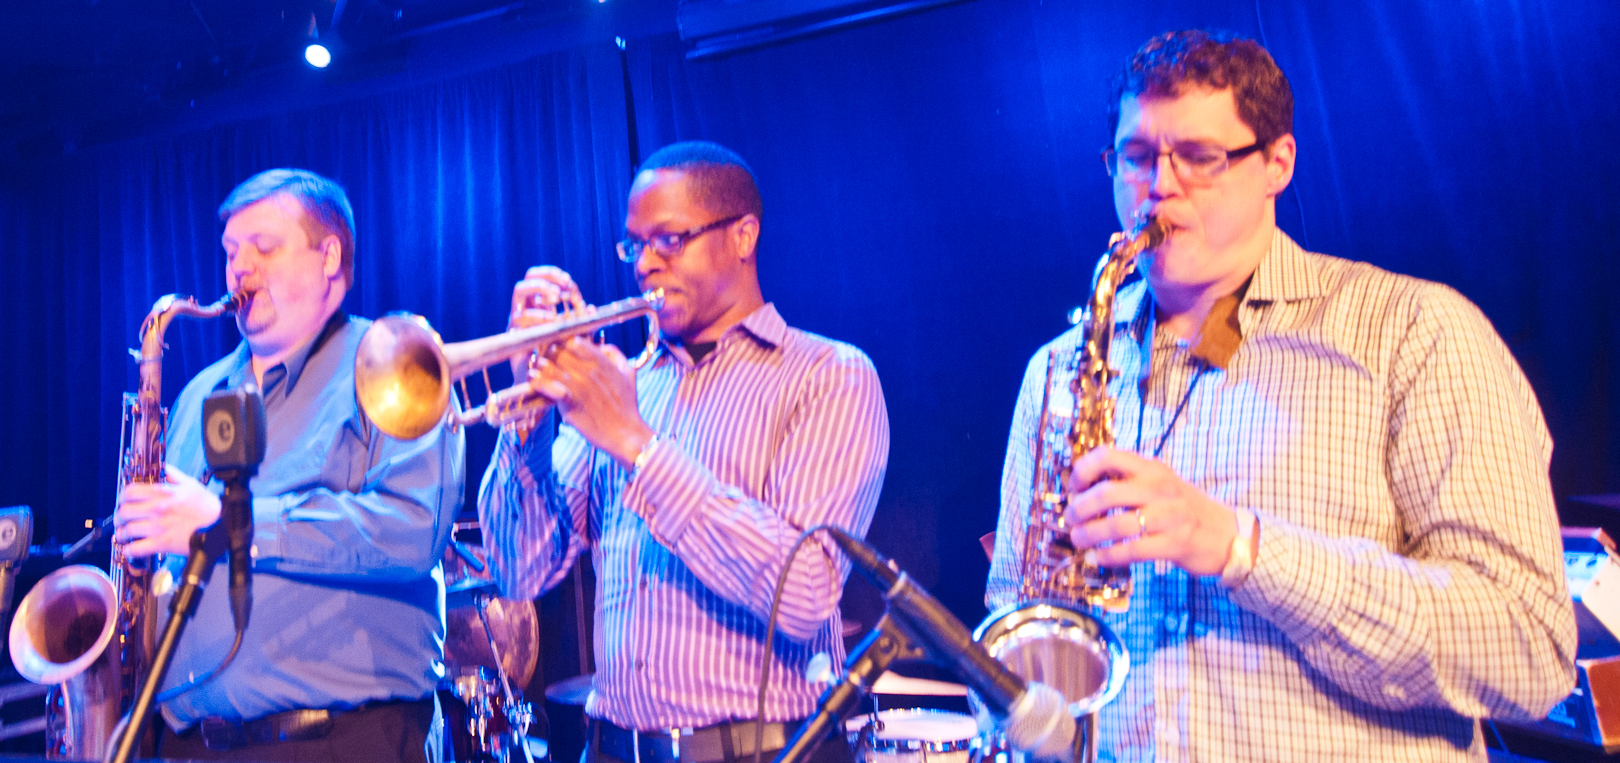 Joel Frahm, Brandon Lee and Todd Bashore with Laurence Hobgood at the Winter Jazzfest 2012